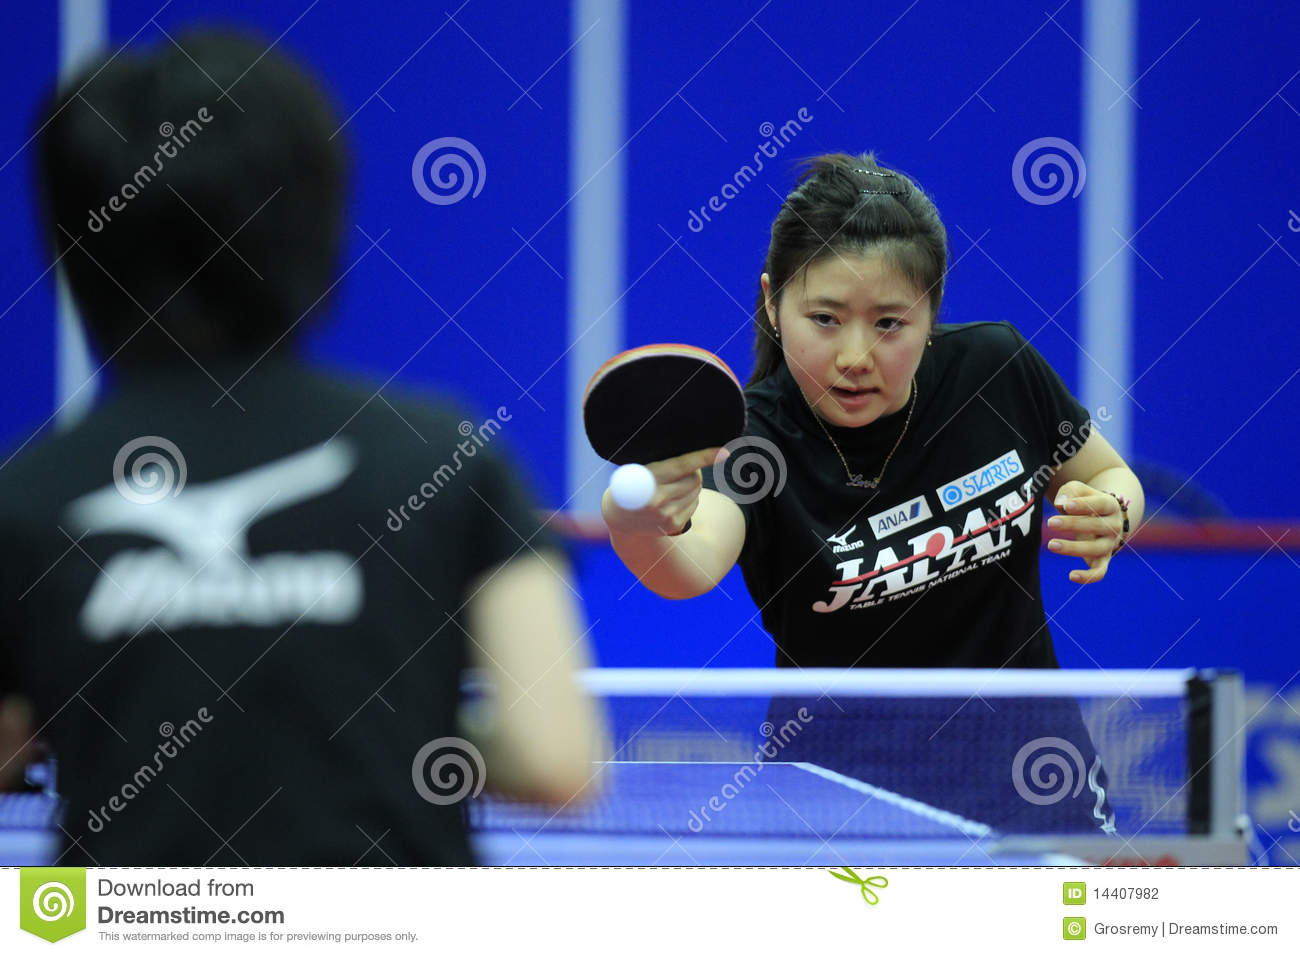 World team table tennis championships editorial photography image 14407982 - World table tennis championships ...